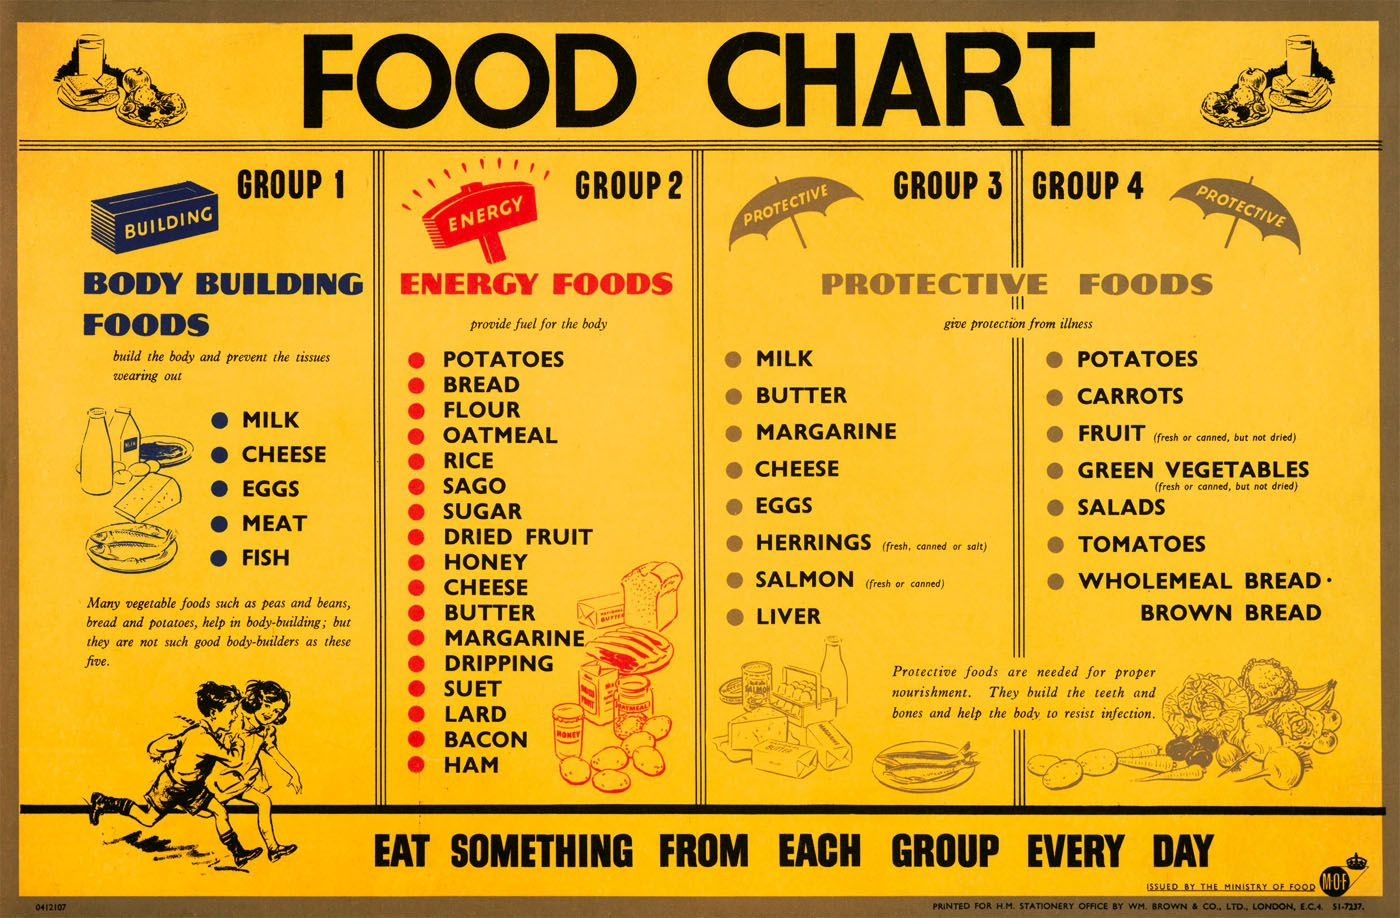 Food Chart | 4 Food Groups by health benefits | Basic Food Chart ...